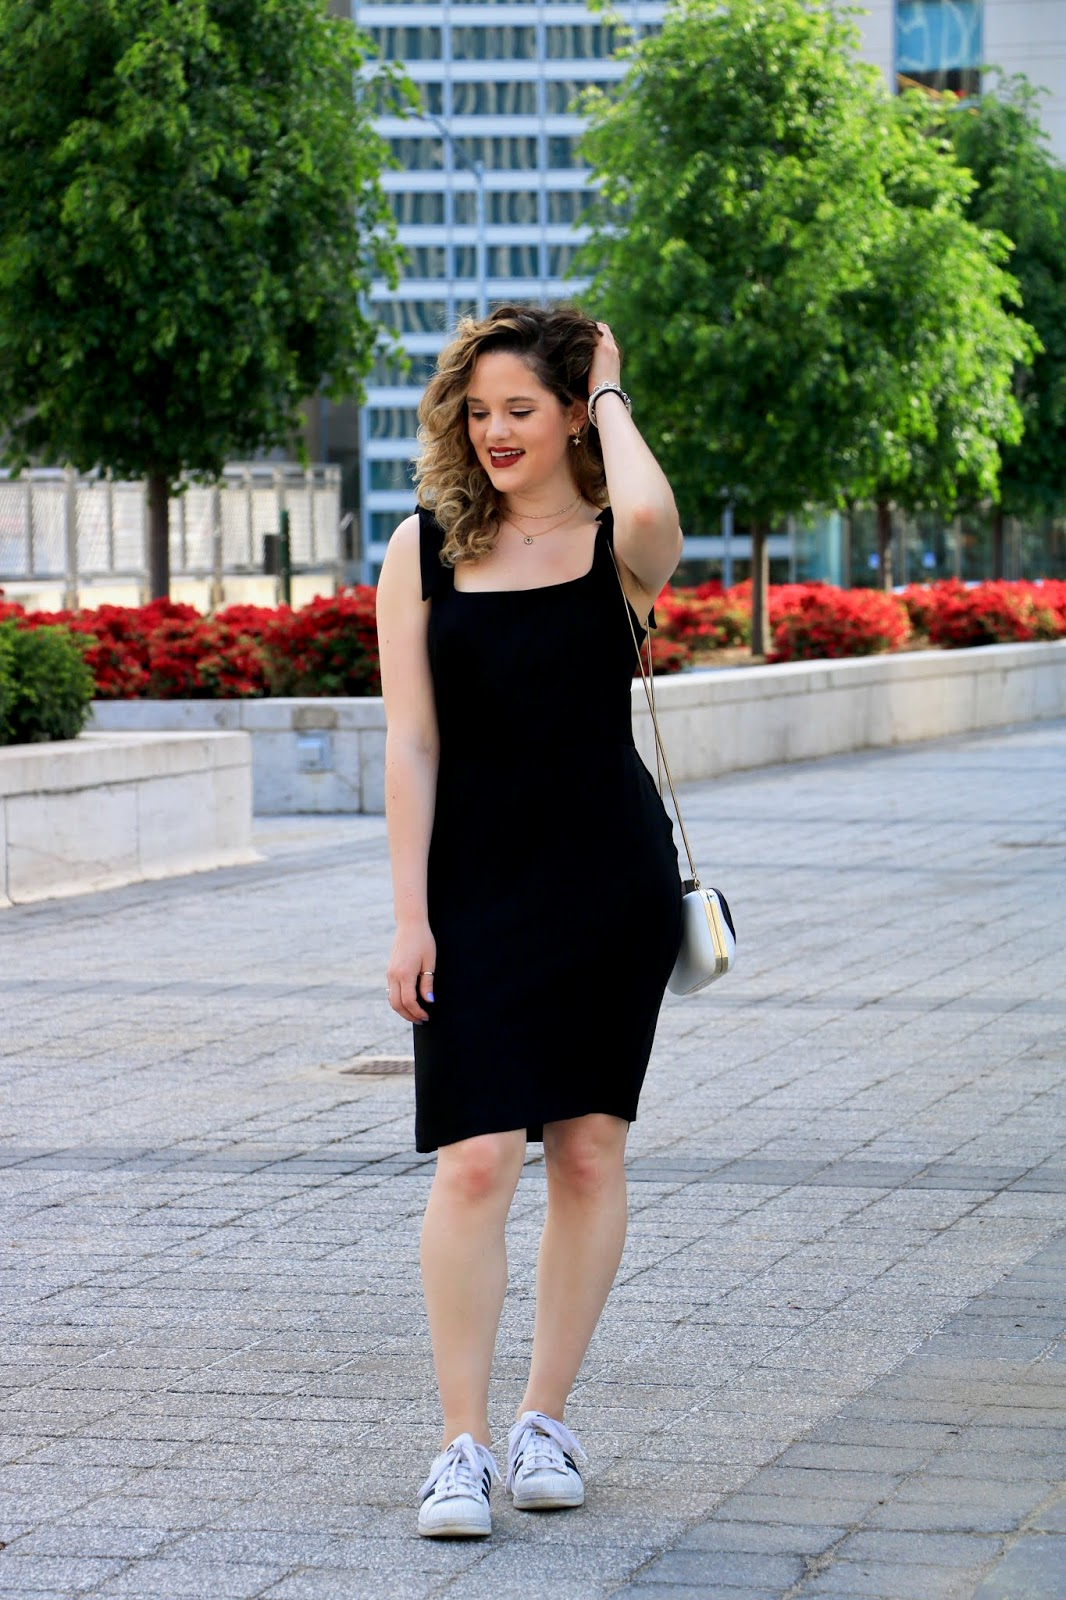 Nyc fashion blogger Kathleen Harper wearing a cute black dress for work.